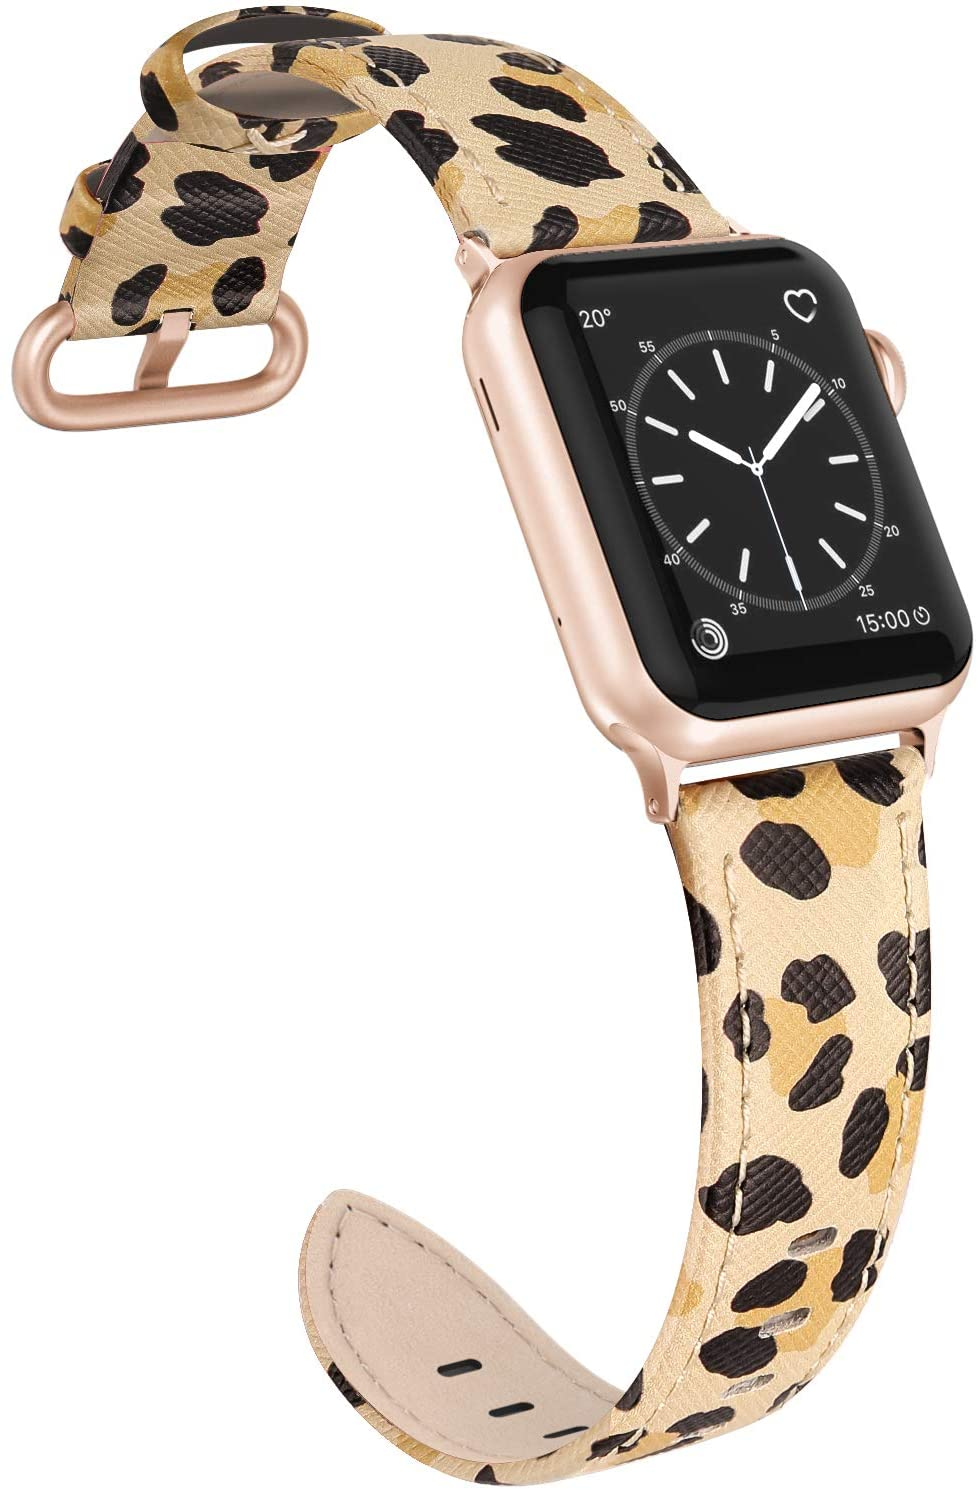 SWEES Leather Band Compatible for iWatch 38mm 40mm, Slim Thin Dressy Elegant Genuine Leather Strap Compatible iWatch Series 5/4/3/2/1 Sport Edition Women, Leopard Print